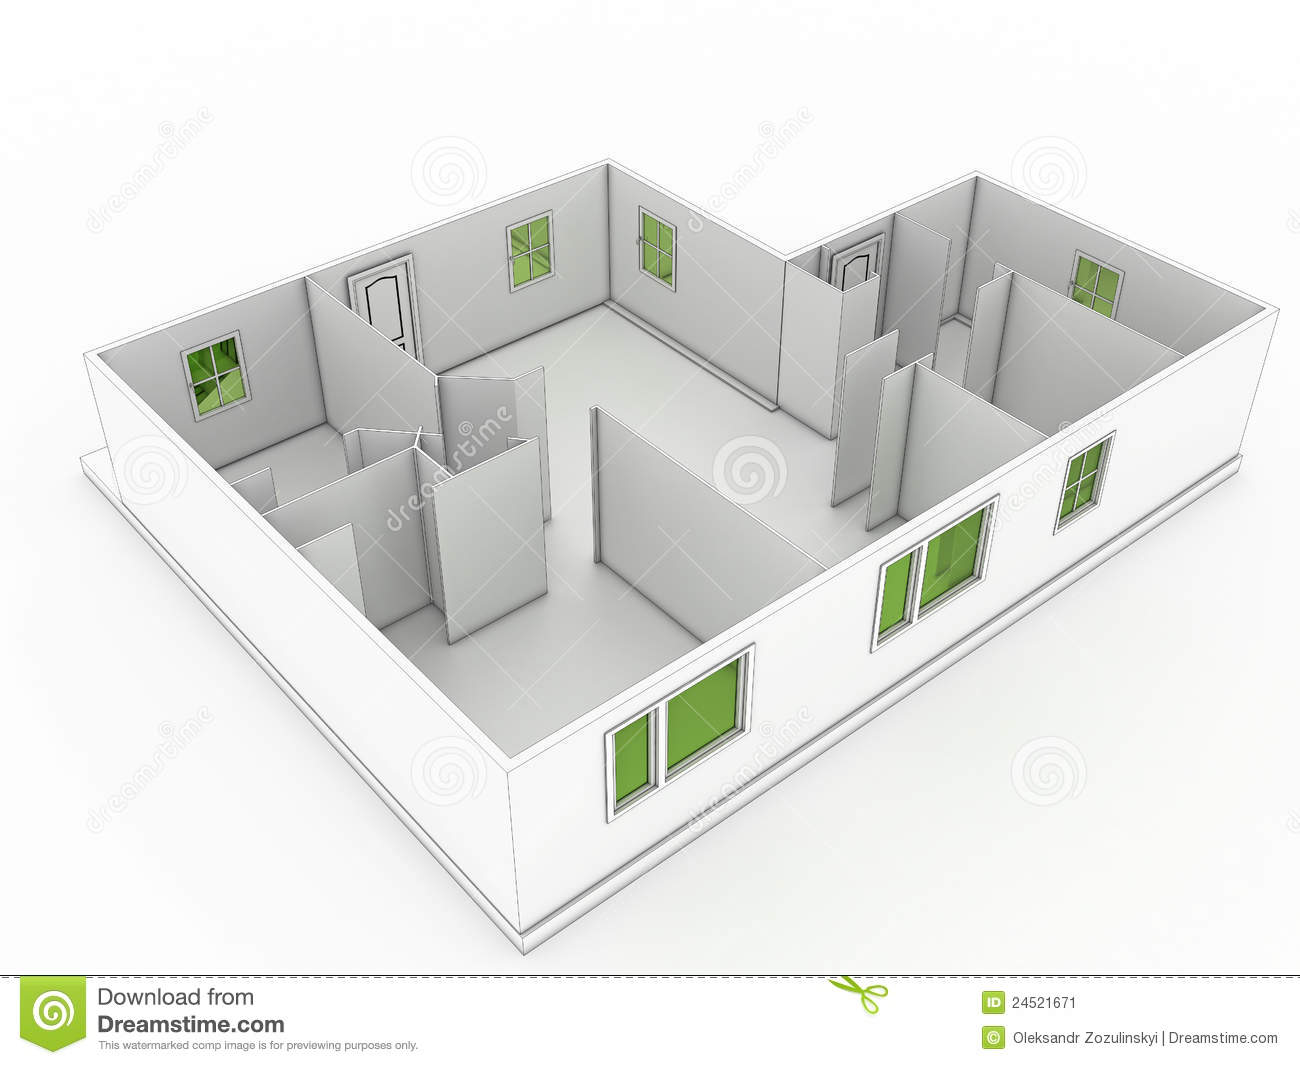 3d Drawing Of A Building 1: 3d house building